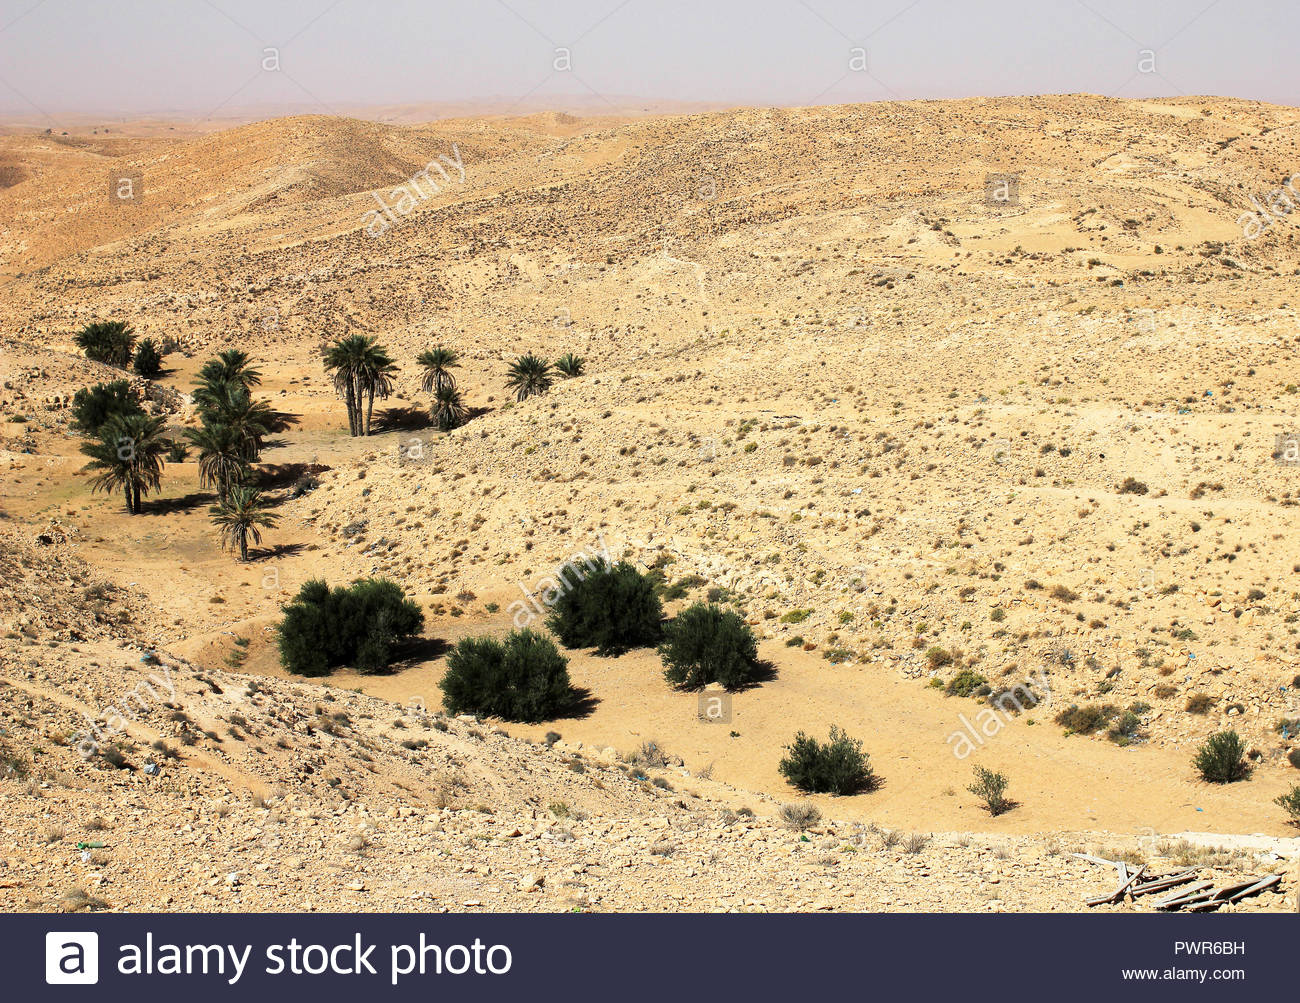 Photo of sandy Sahara desert in Tunisia with bushes in oasis - Stock Image